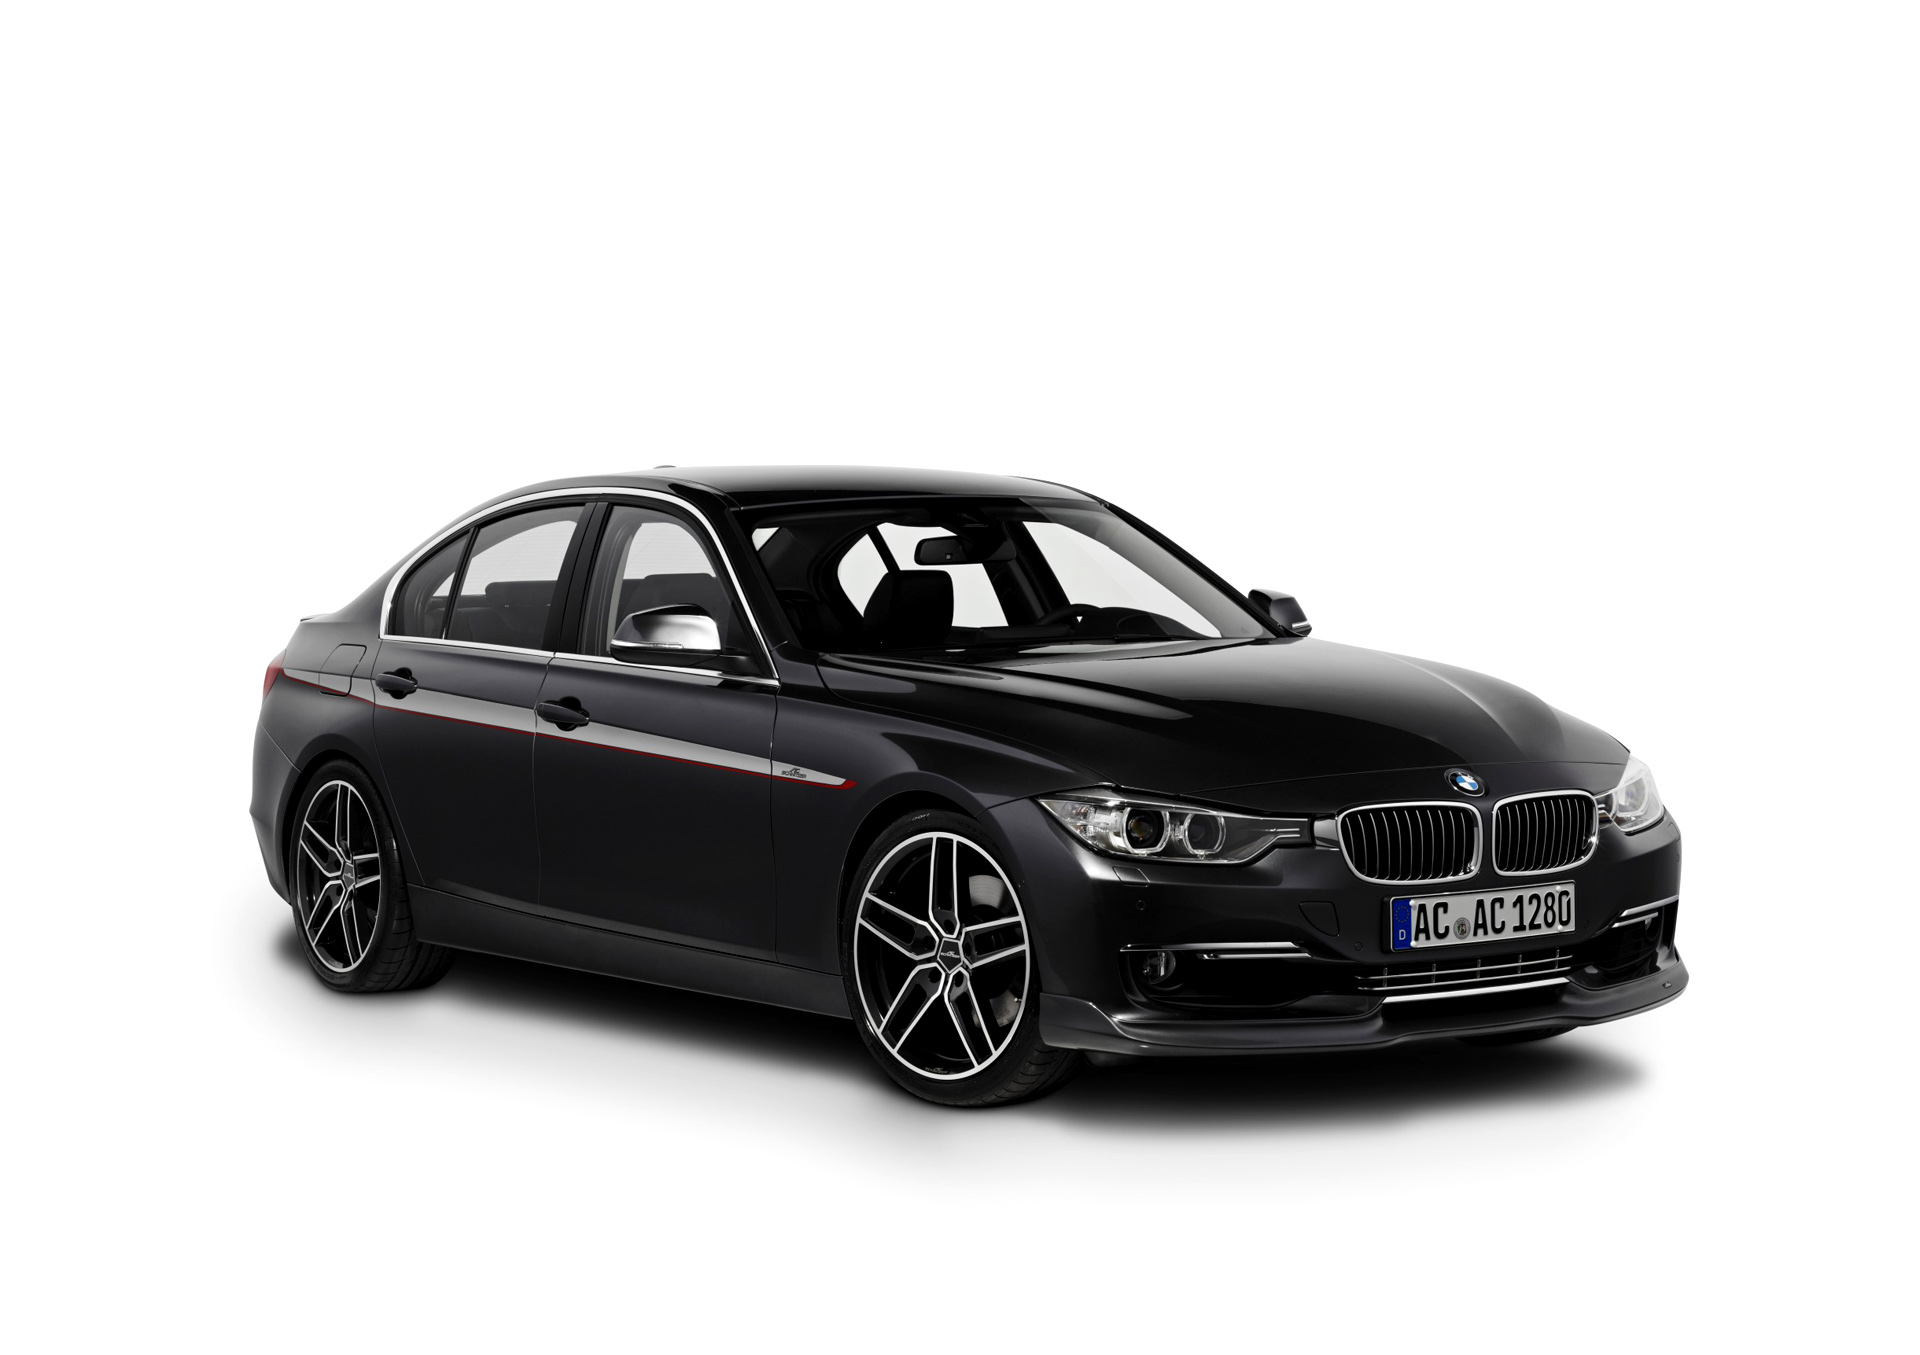 ac schnitzer f30 3 series bmw now official. Black Bedroom Furniture Sets. Home Design Ideas